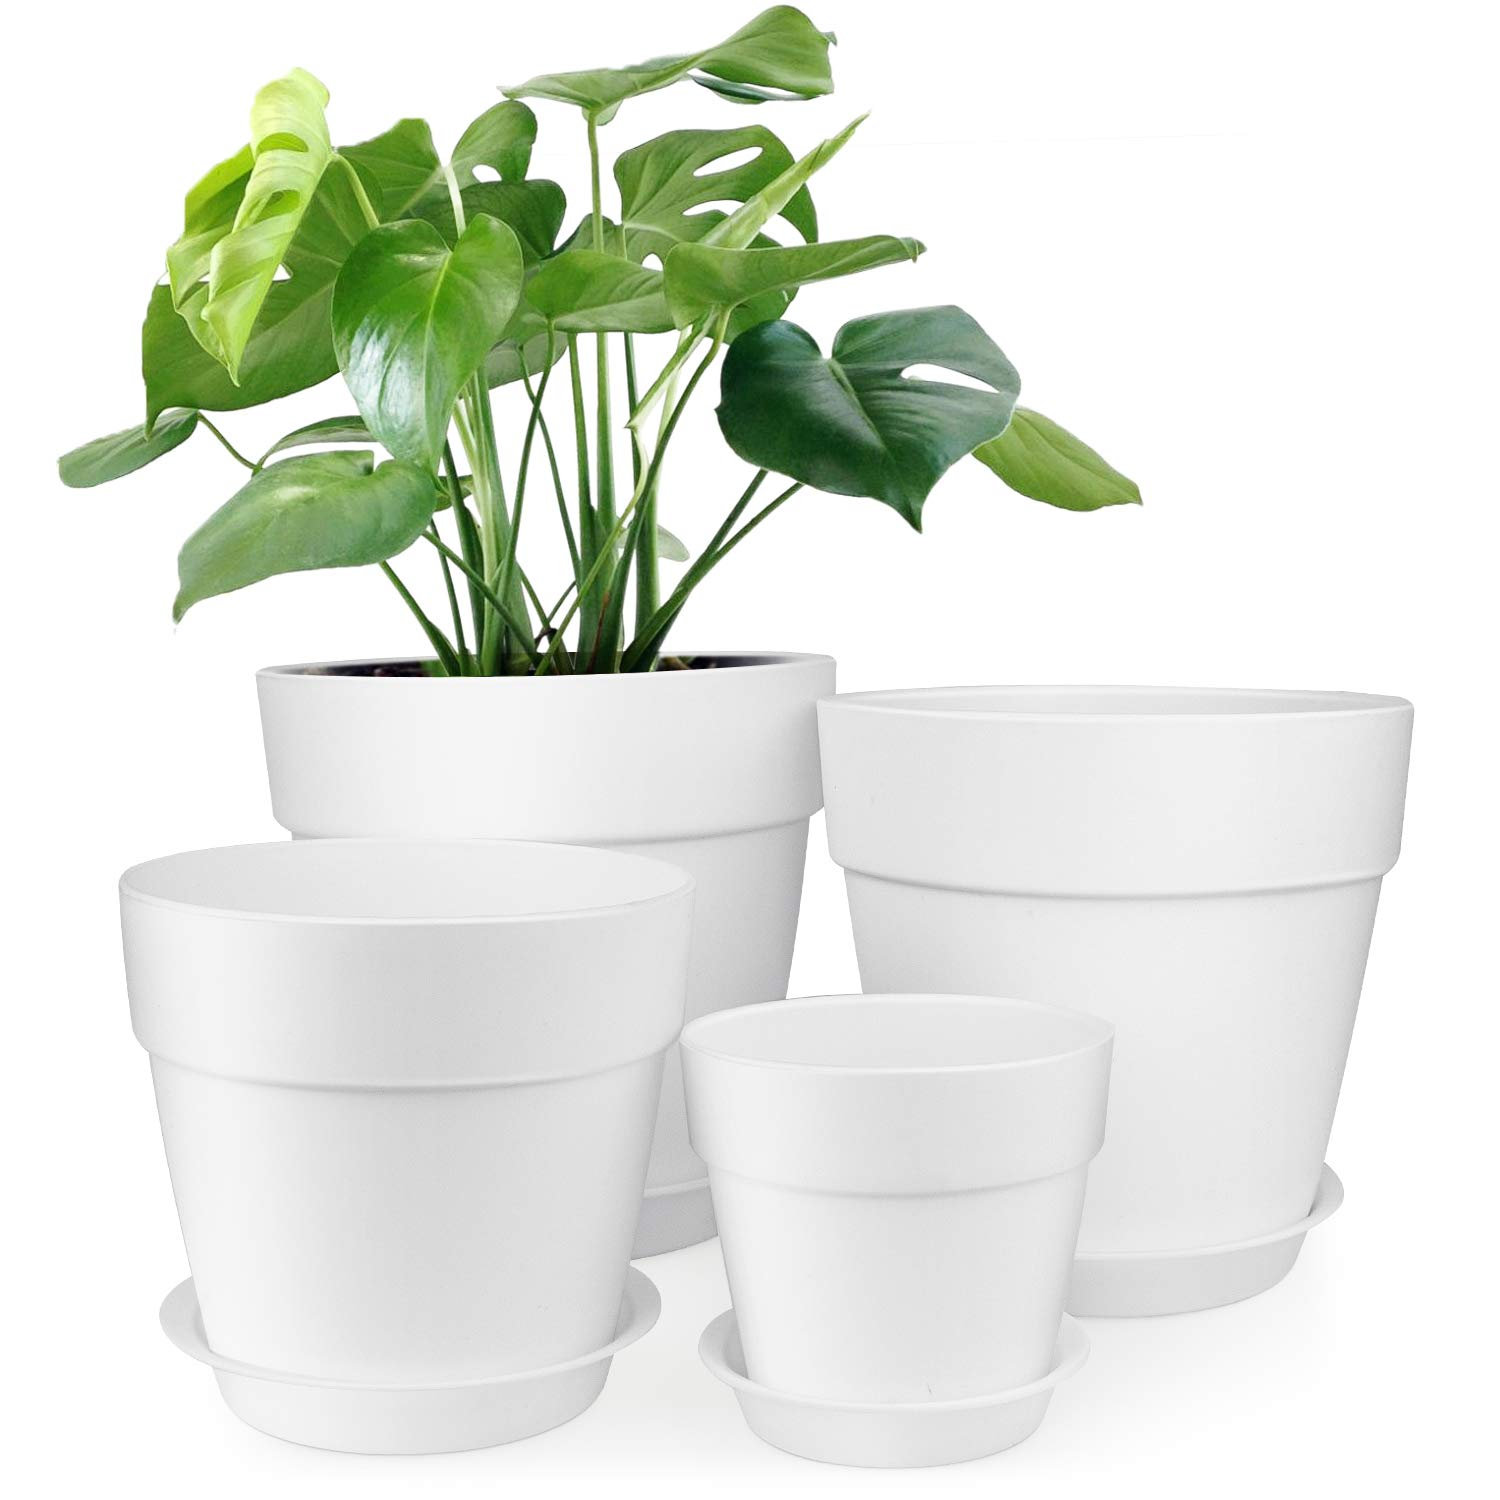 HOMENOTE 7/6.5/5/3.7 inch Plastic Planters Indoor Set of 4 White Plant Pots with Drainage Trays Modern Round Flower pots for House Plants, Succulents, Flowers,Herbs by HOMENOTE